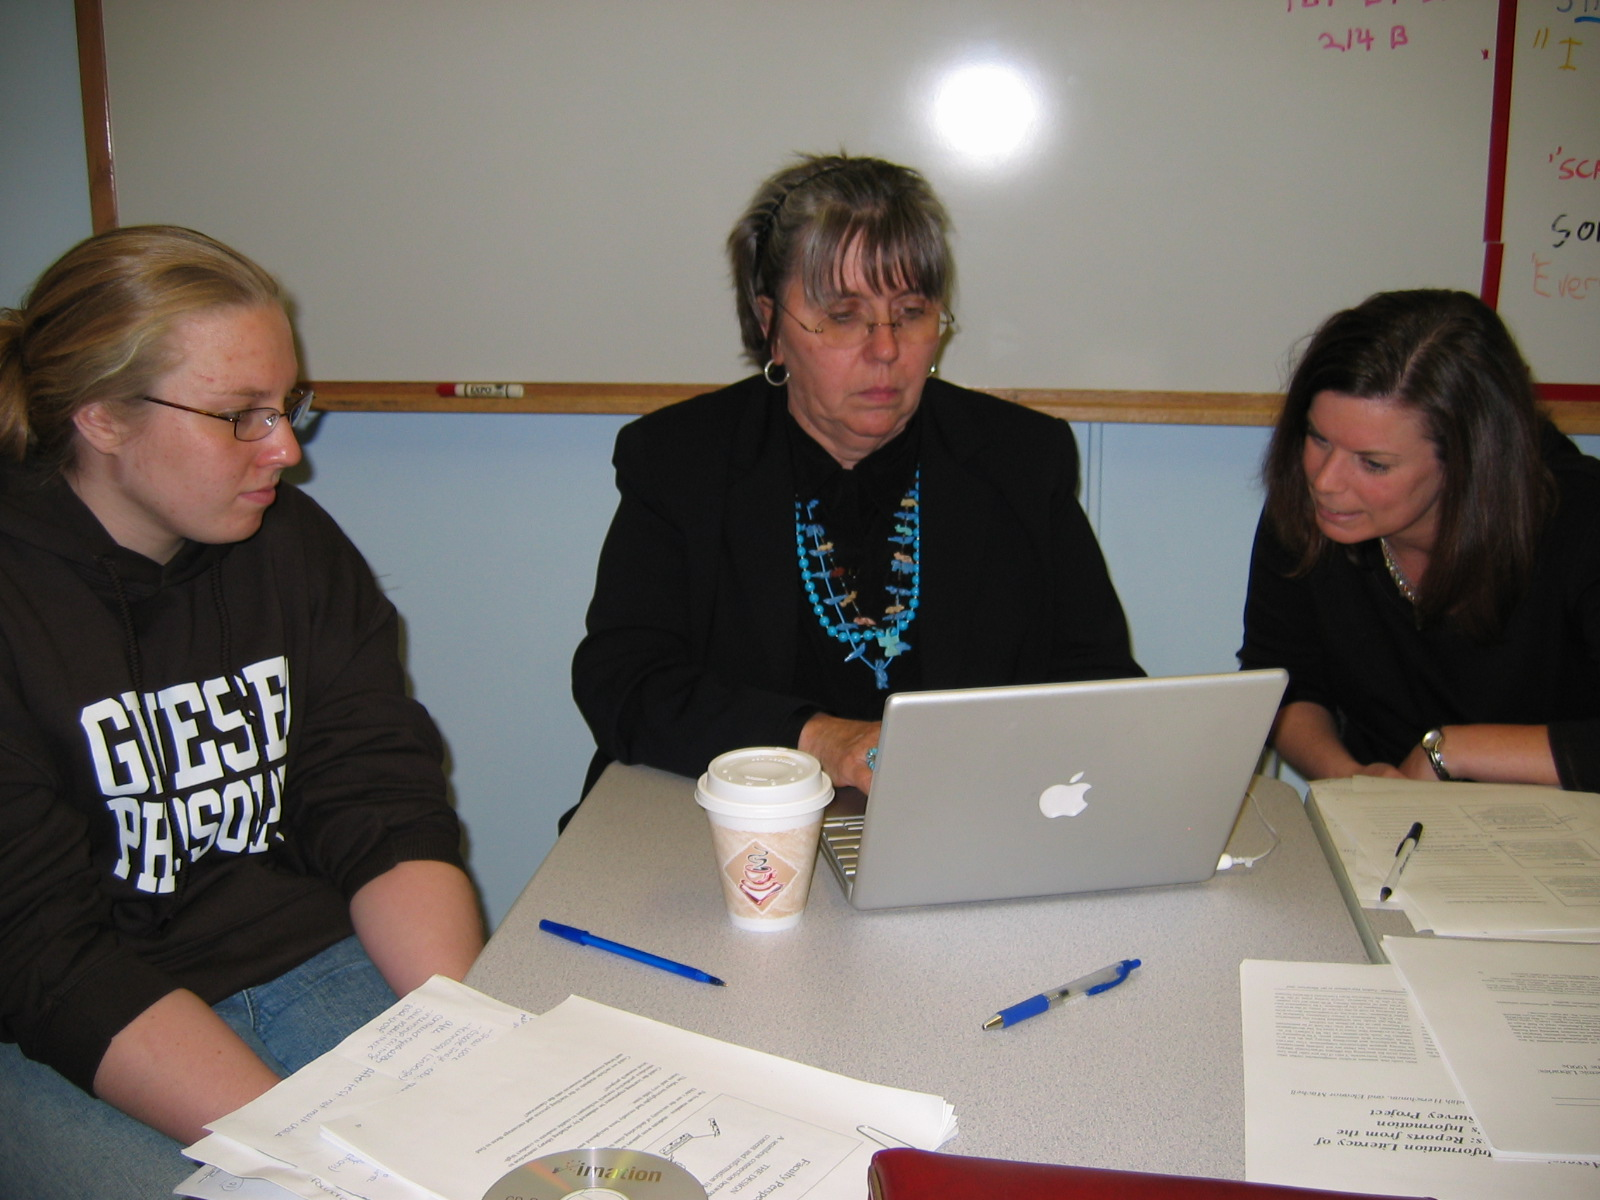 Image of librarian, professor and student working together